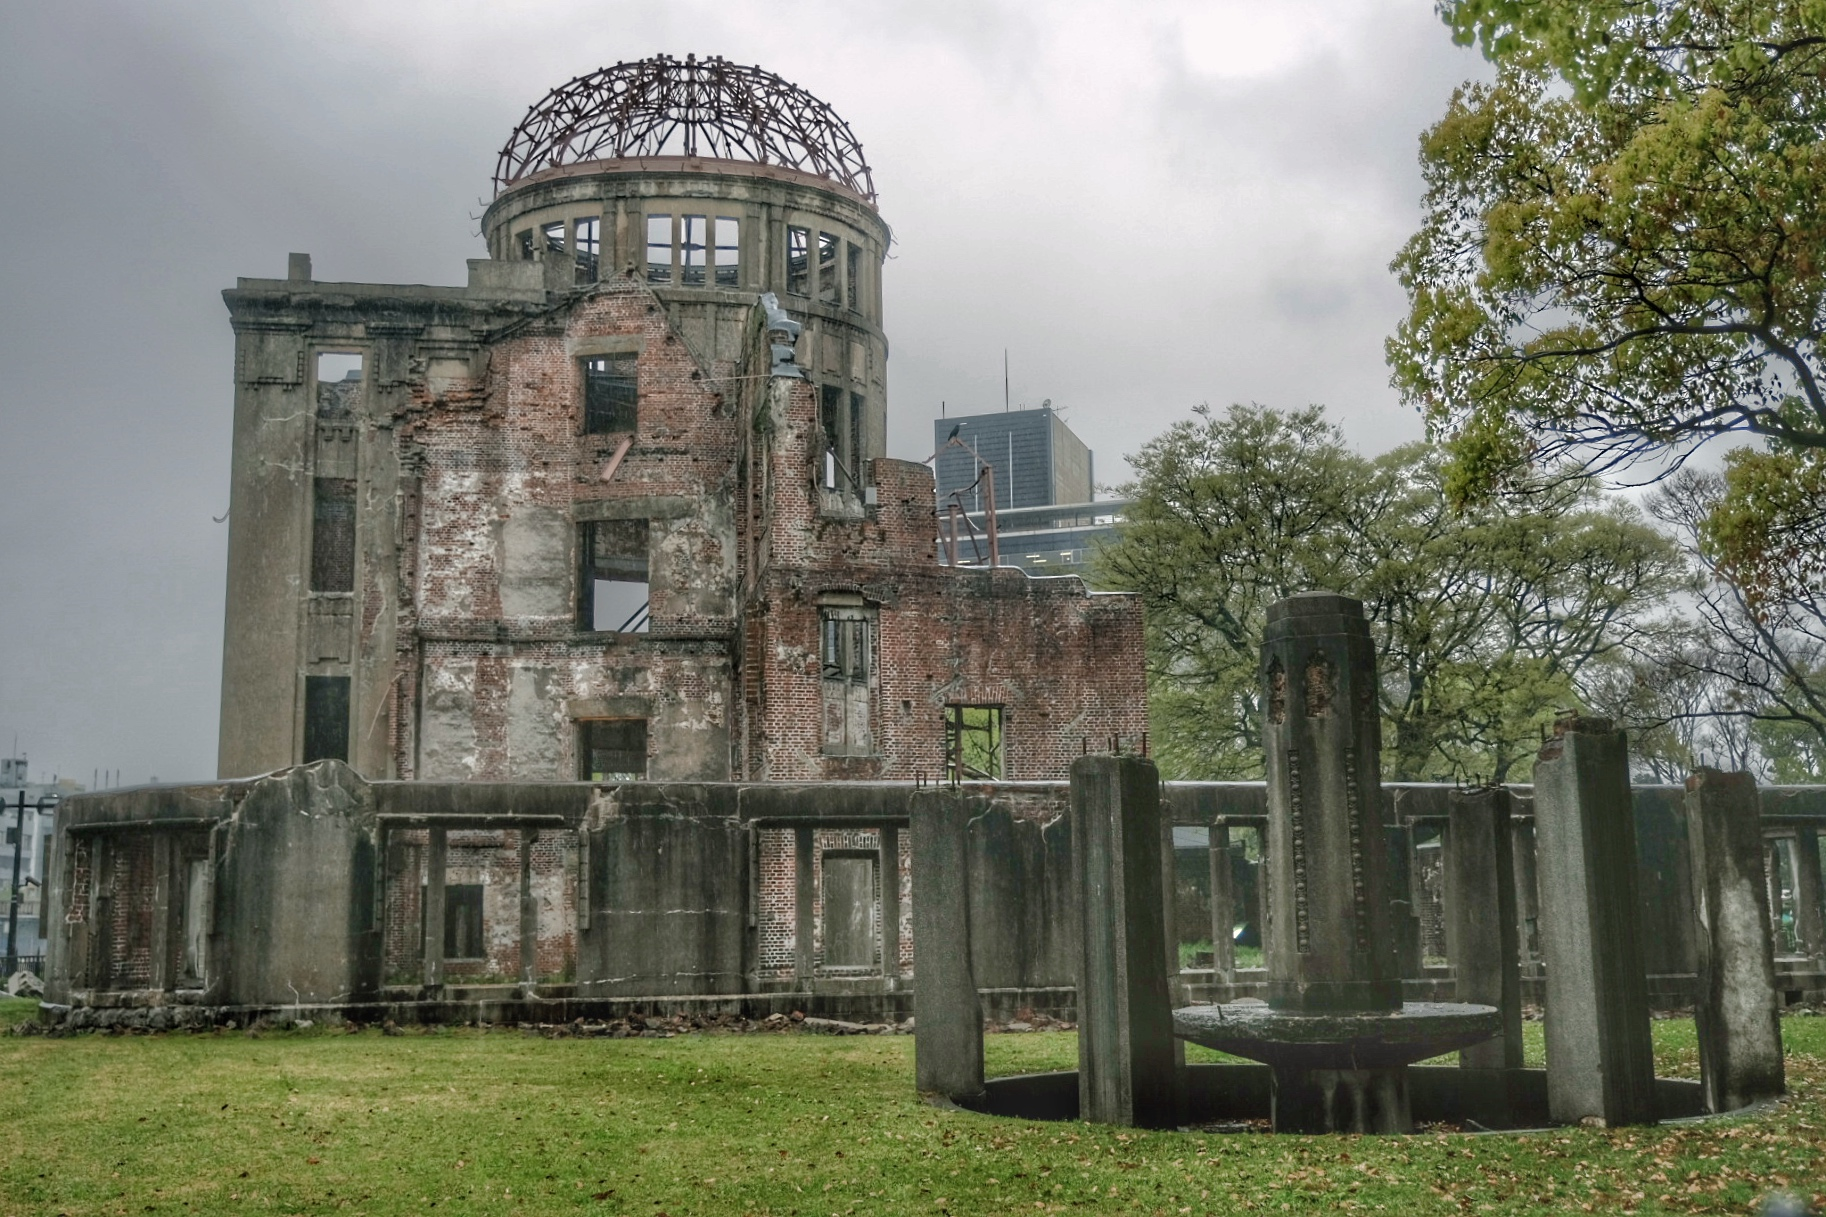 The Atomic Dome.